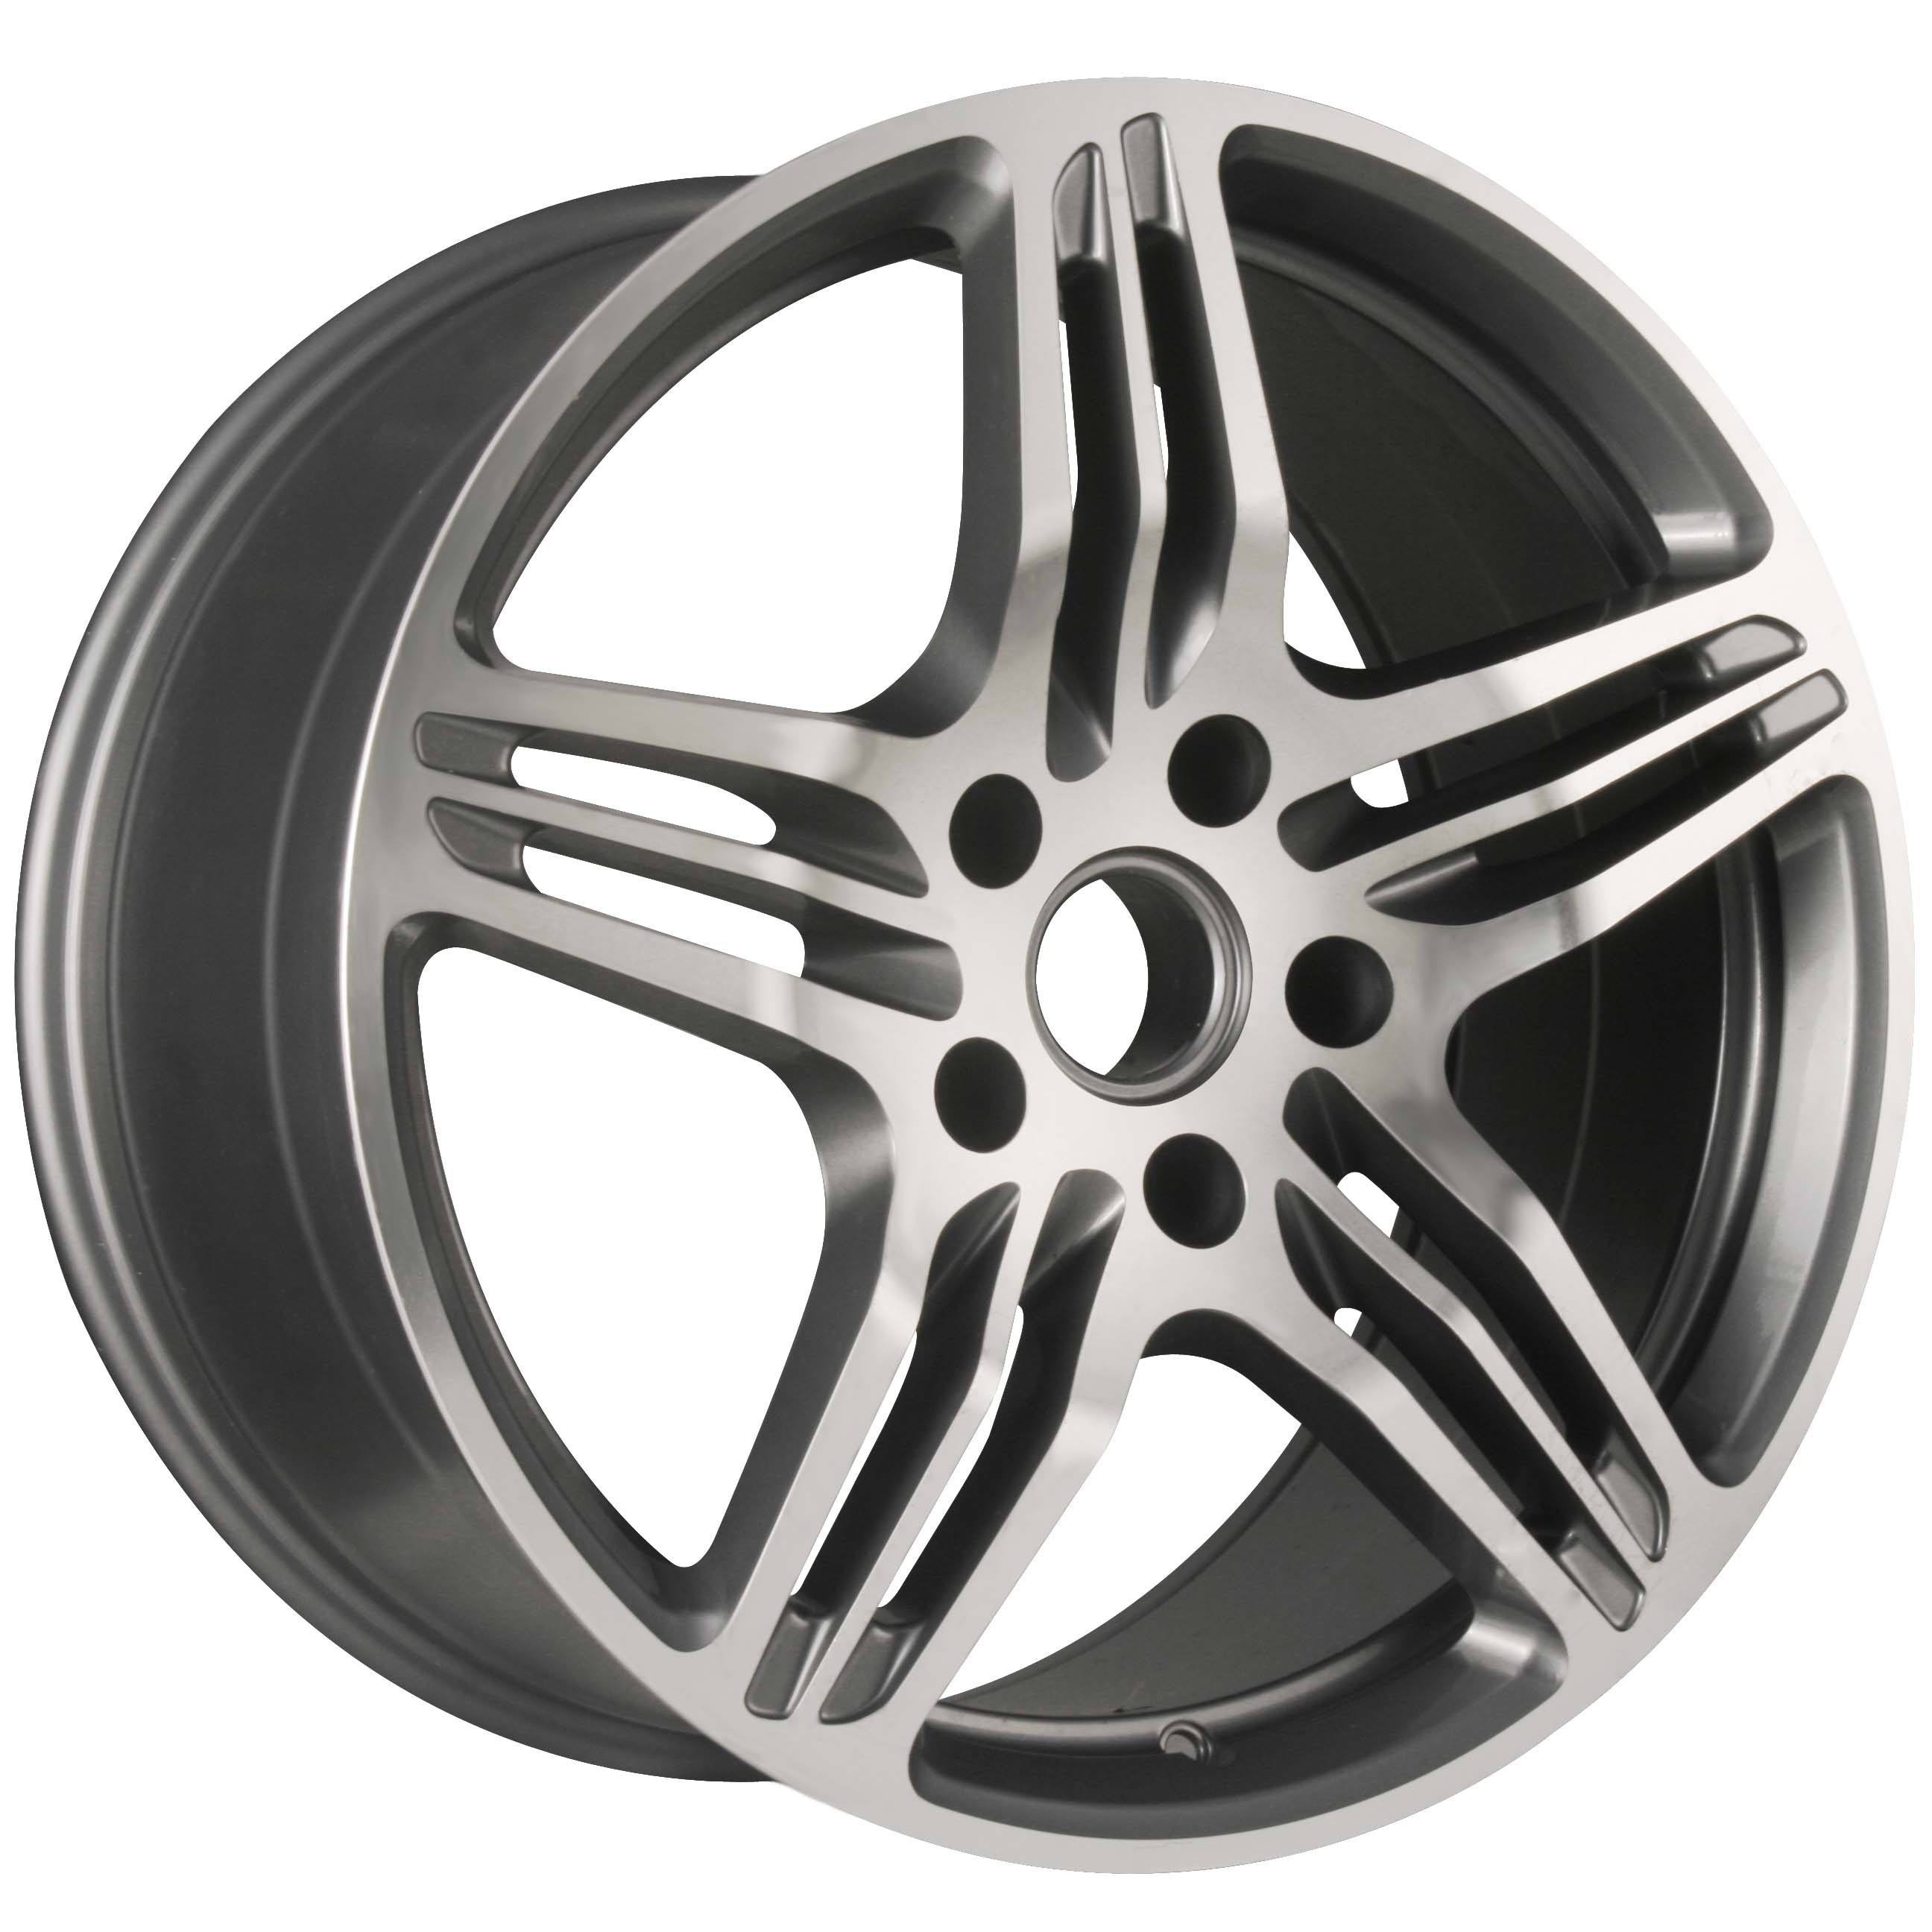 19inch Alloy Wheel Replica Wheel for Porsche 911 Turbo Cabriolet (2008)